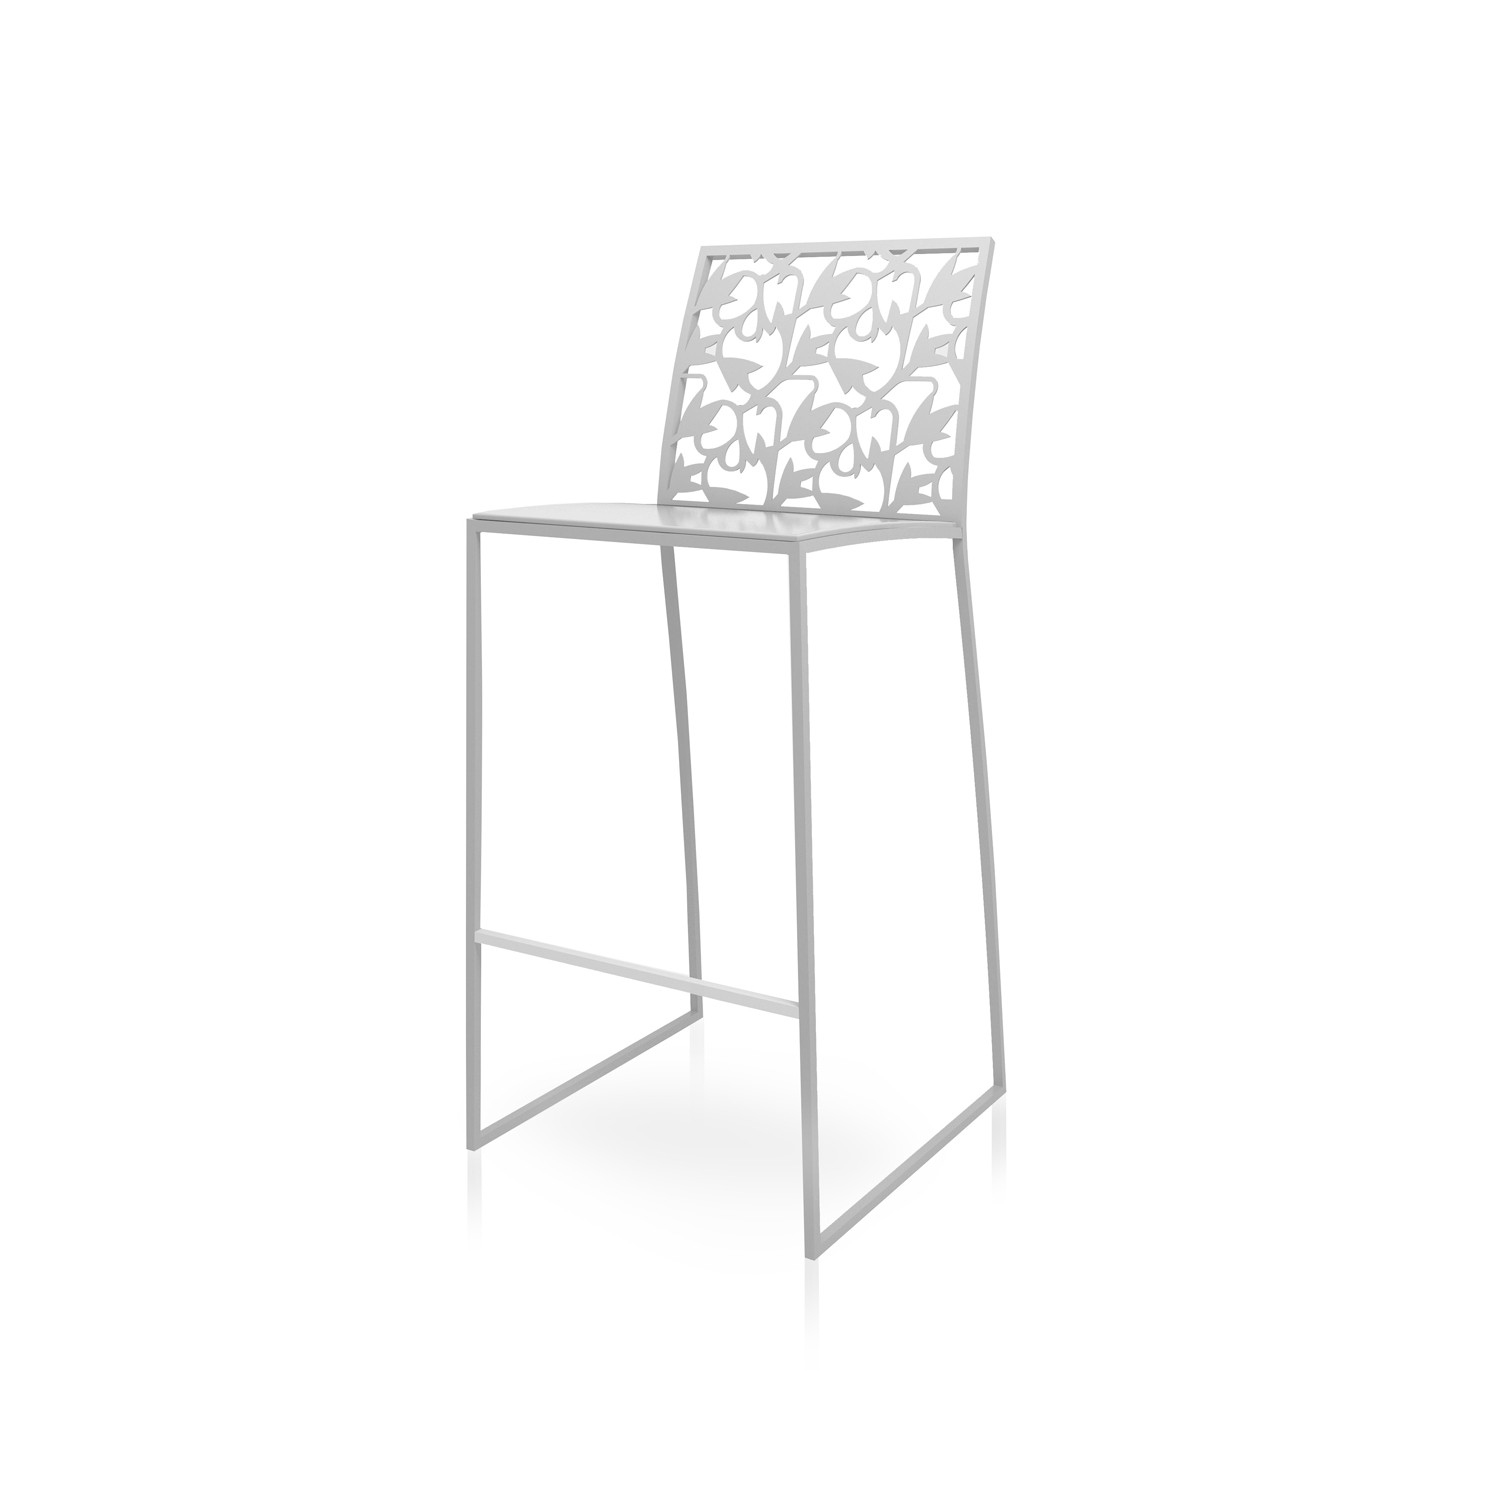 https://www.touchofmodern.com/sales/modloft-living-a66c92c5-f601-4bb1-9ec7-f6793353394c/foley-barstool-white-lacquer?share_invite_token=WQ3PD6V0